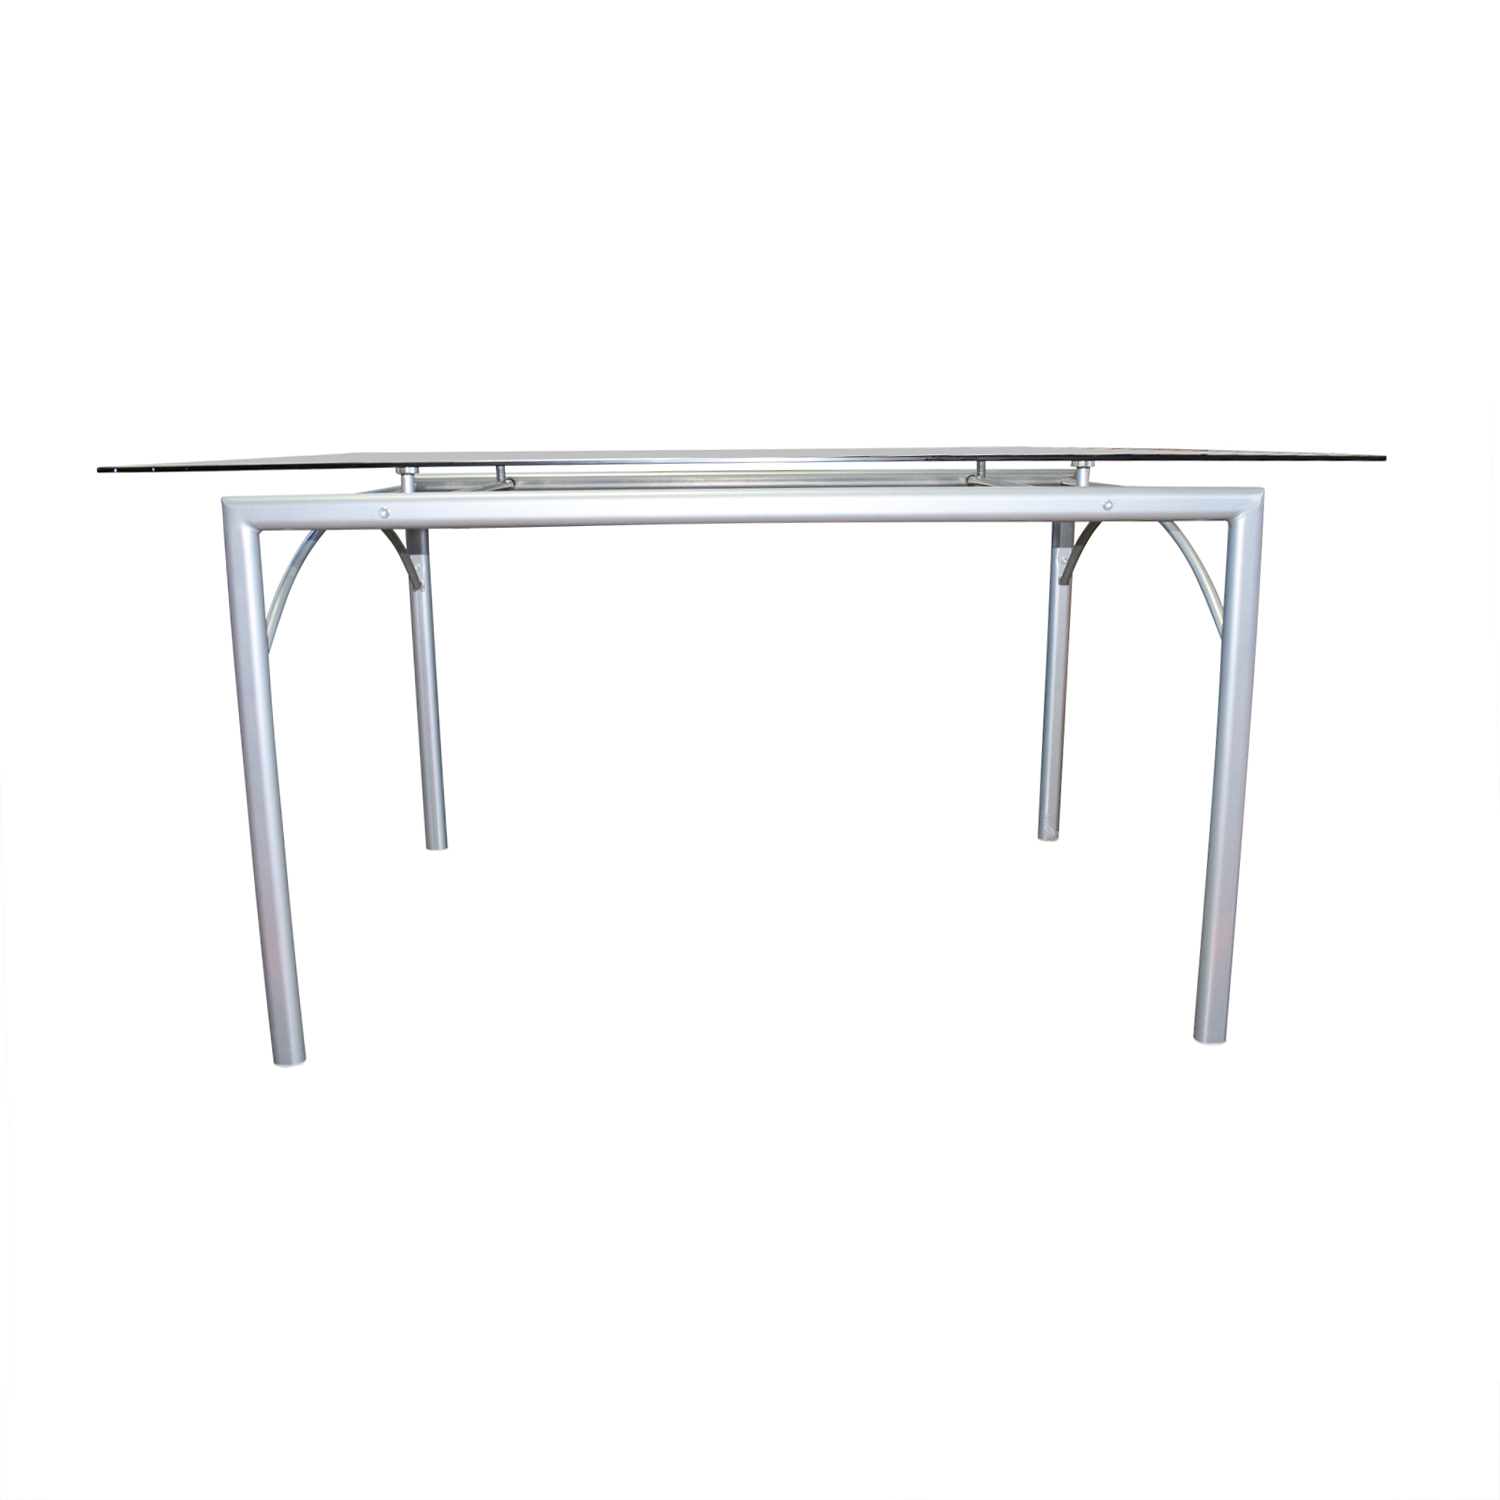 Coaster Coaster Rectangular Glass and Metal Dining Table dimensions